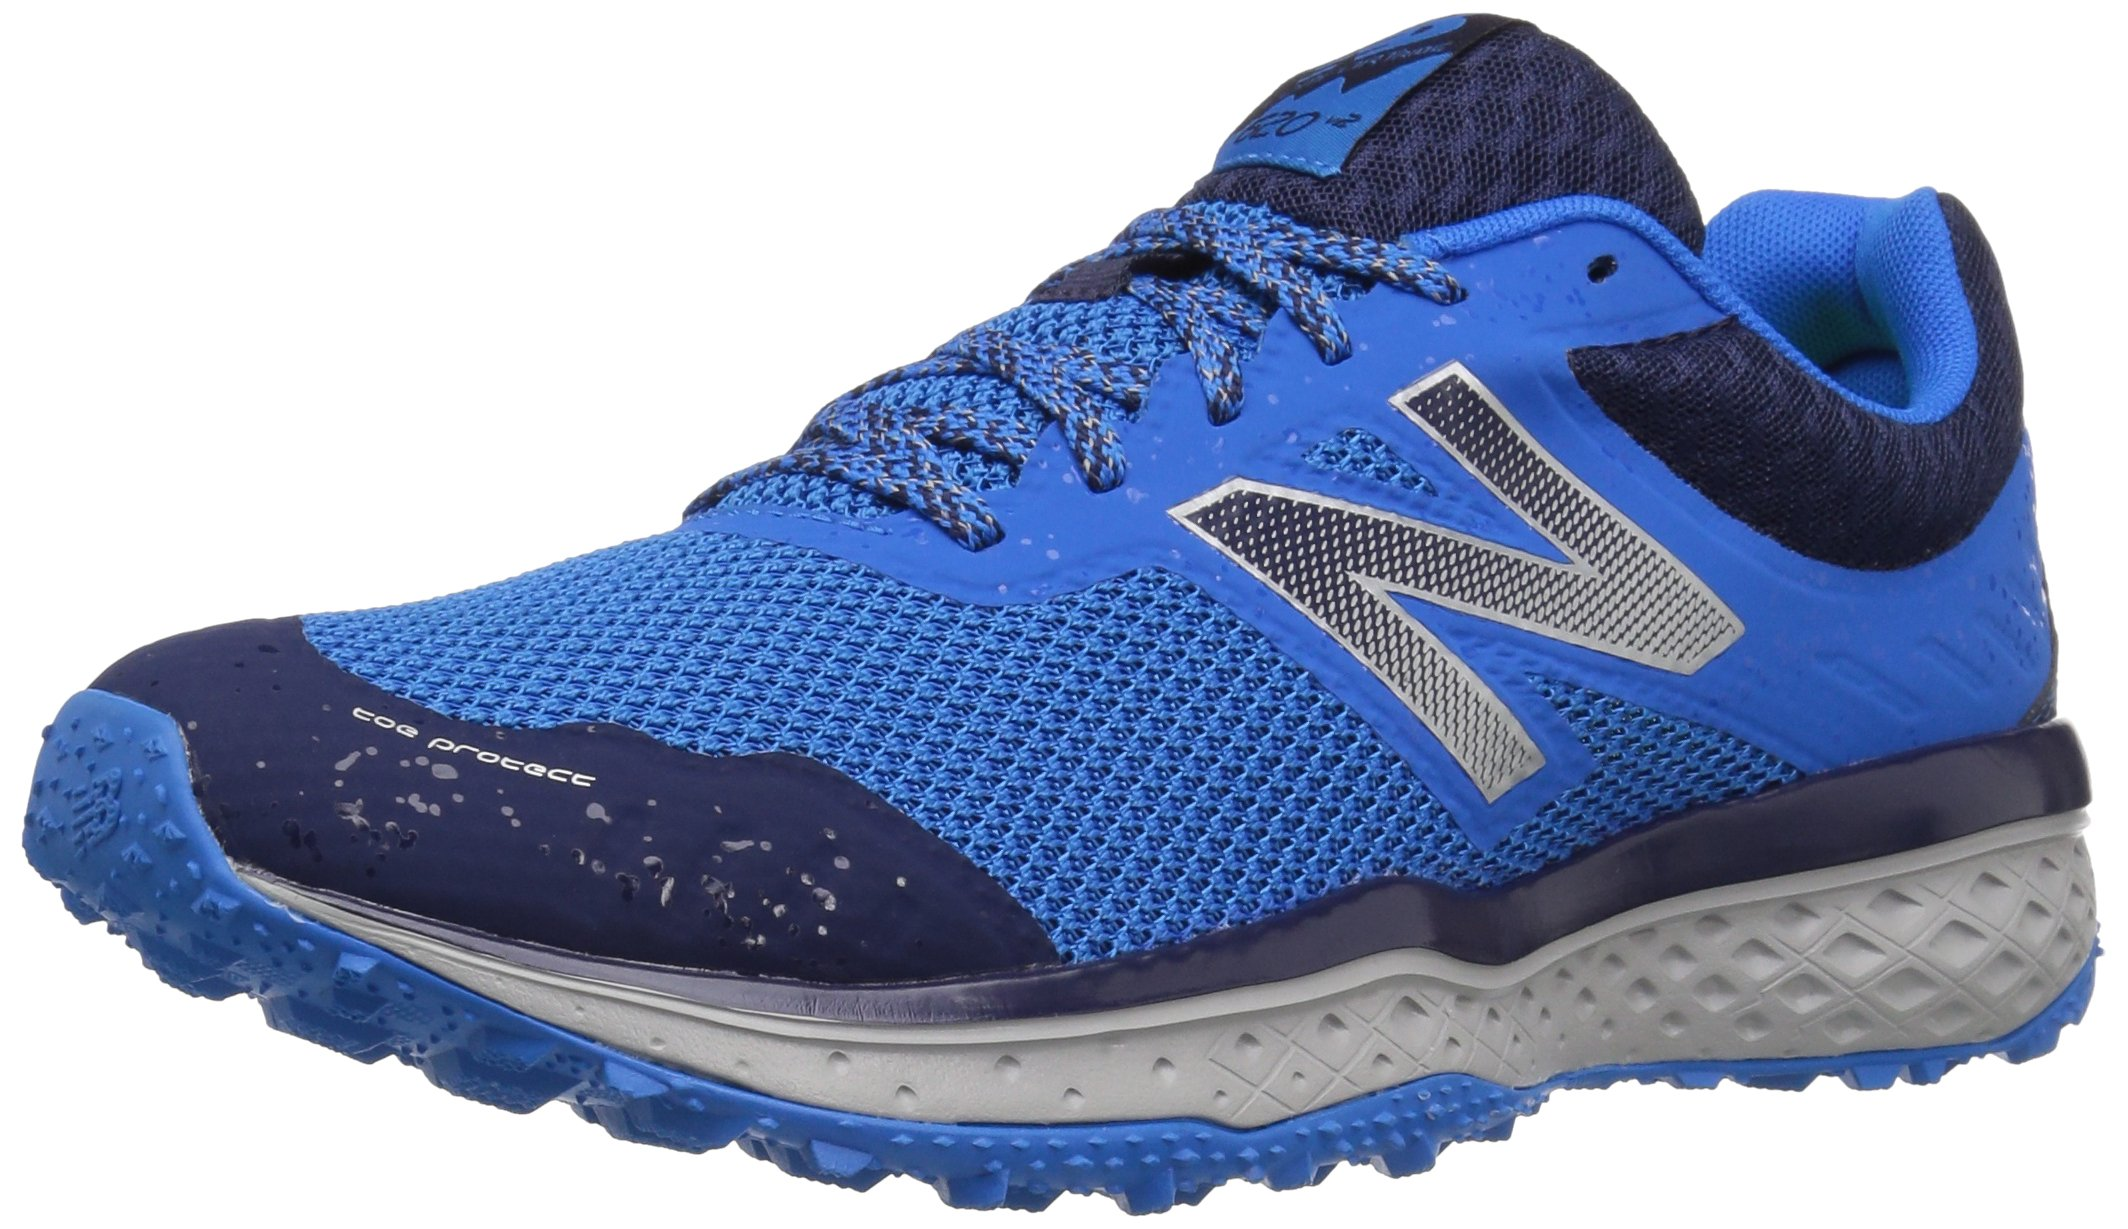 New Balance Mens Cushioning 620V2 Trail Running Shoe, Dark Denim, 11 D US